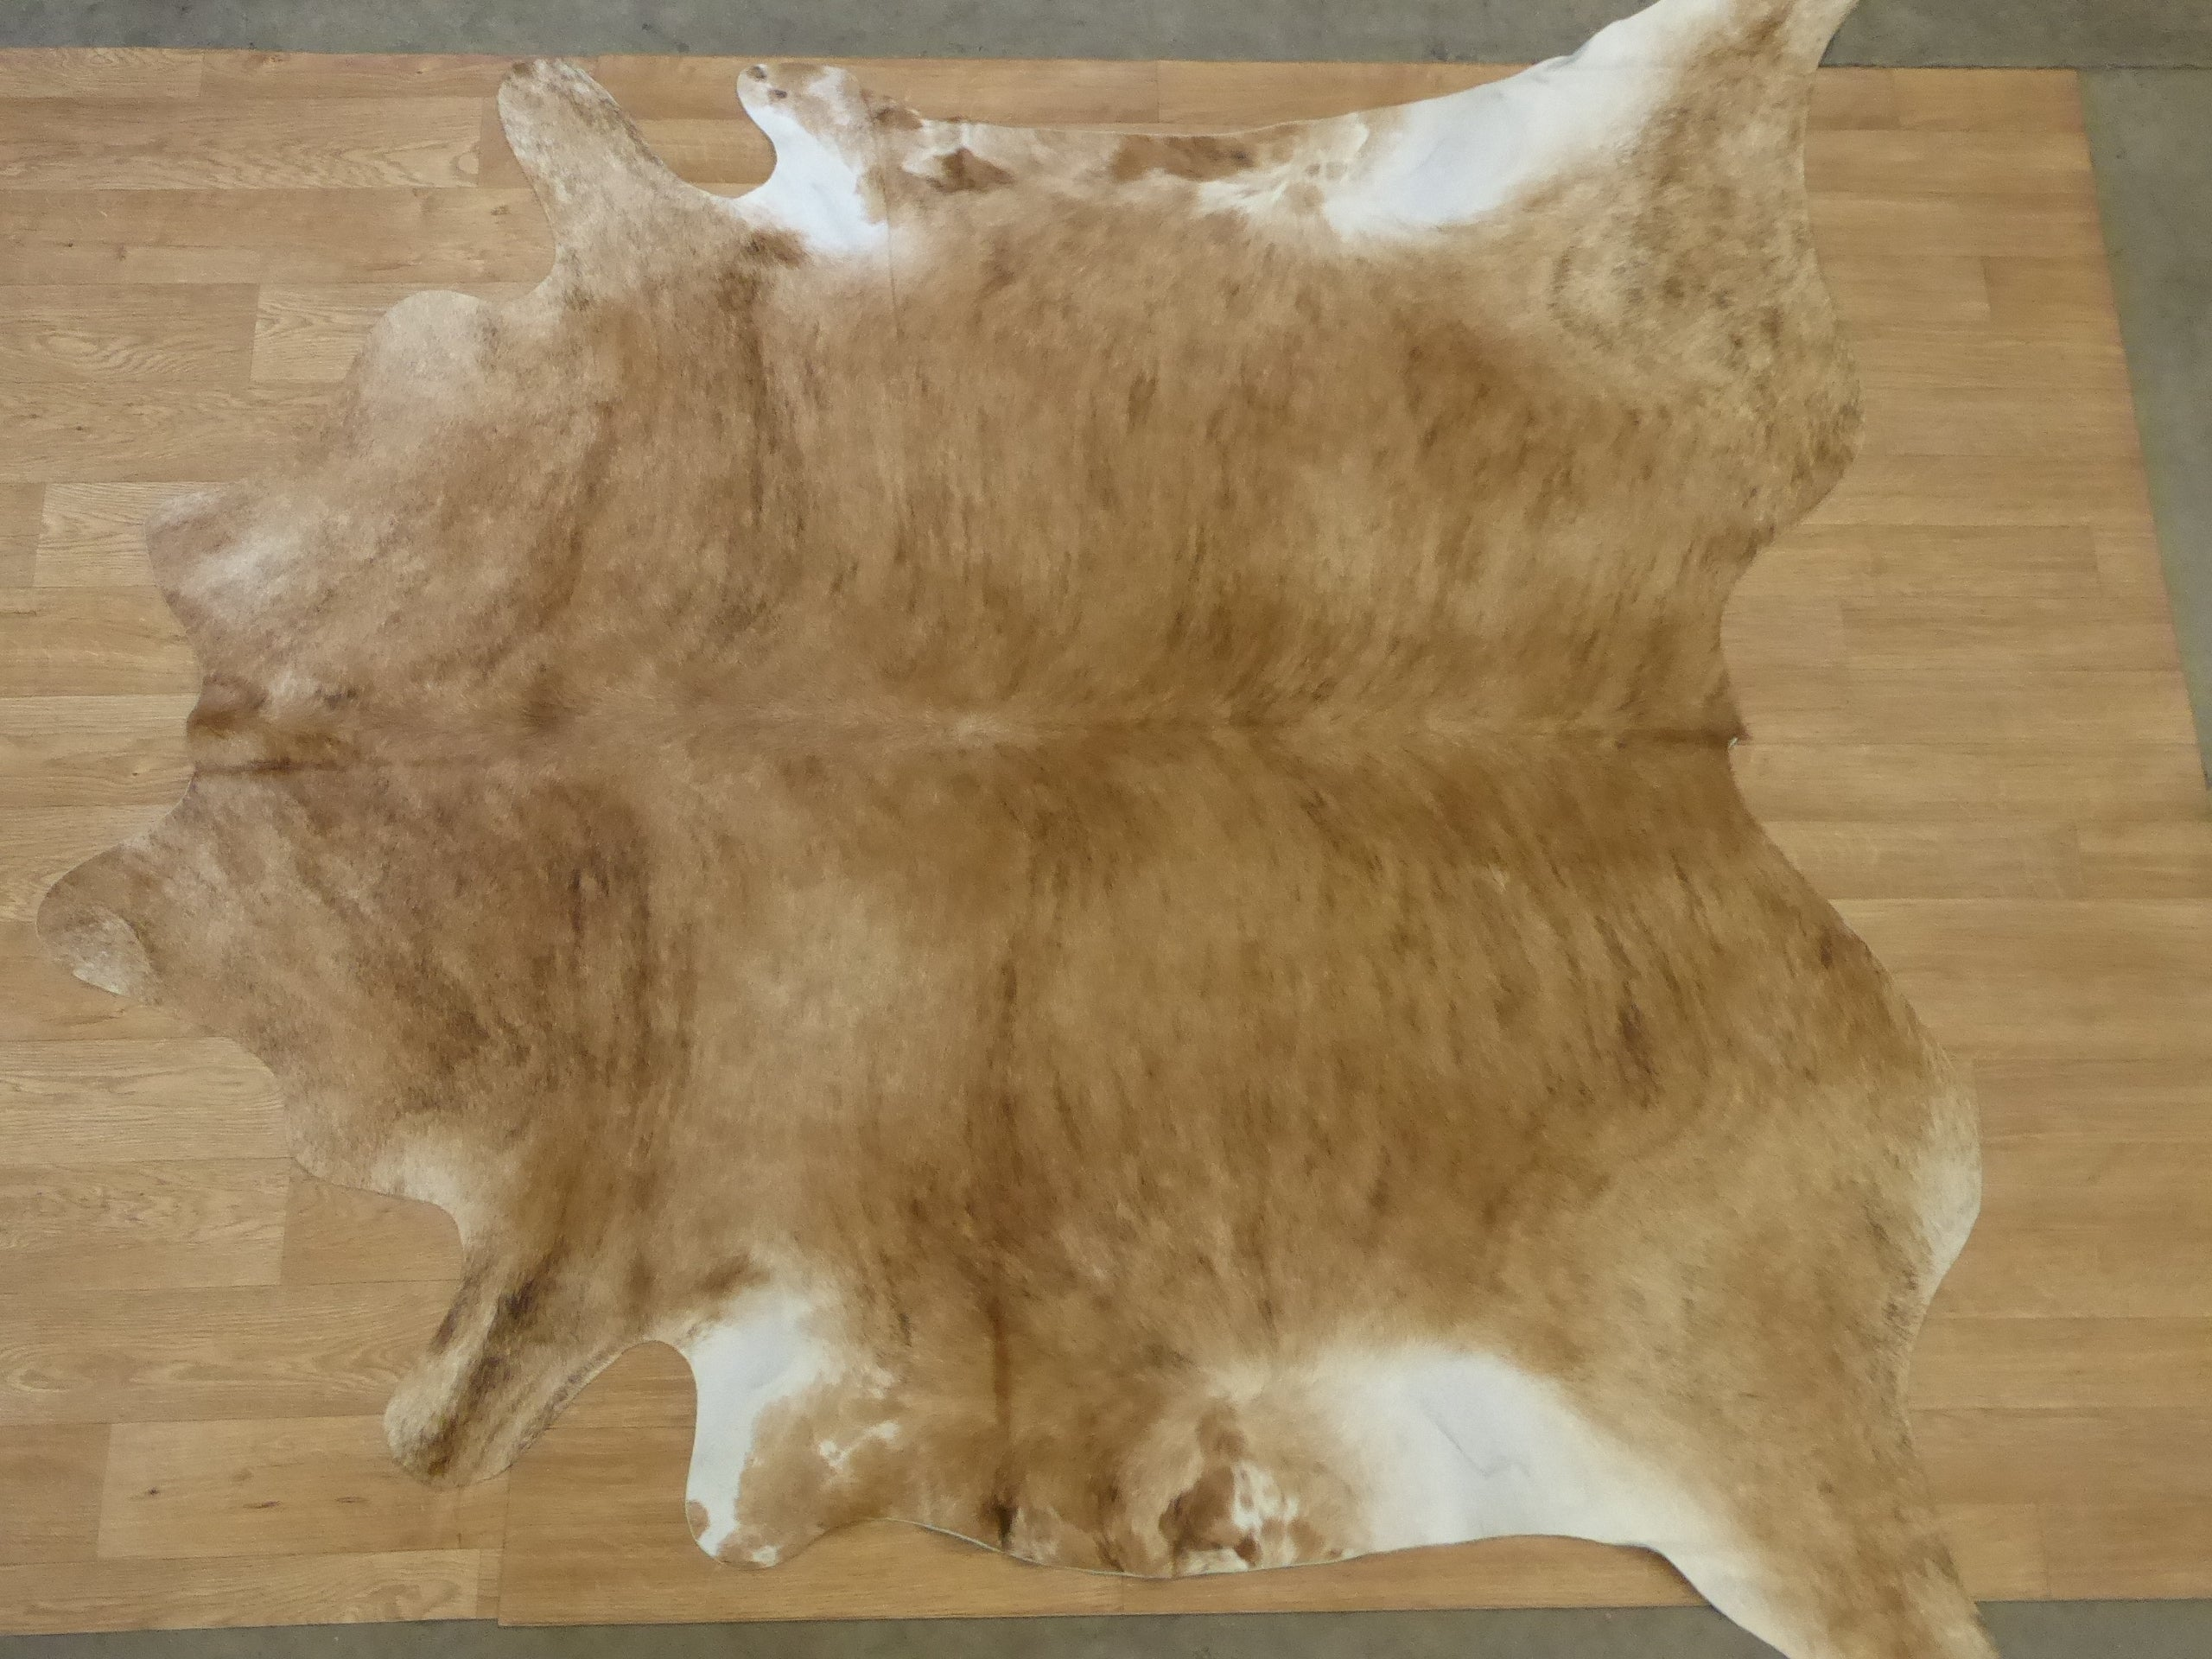 Natural Hair On Cow Hide : This Hide Is Perfect For Wall Hanging, Leather Rugs, Leather Bags & Leather Accessories (pic code 1020065)